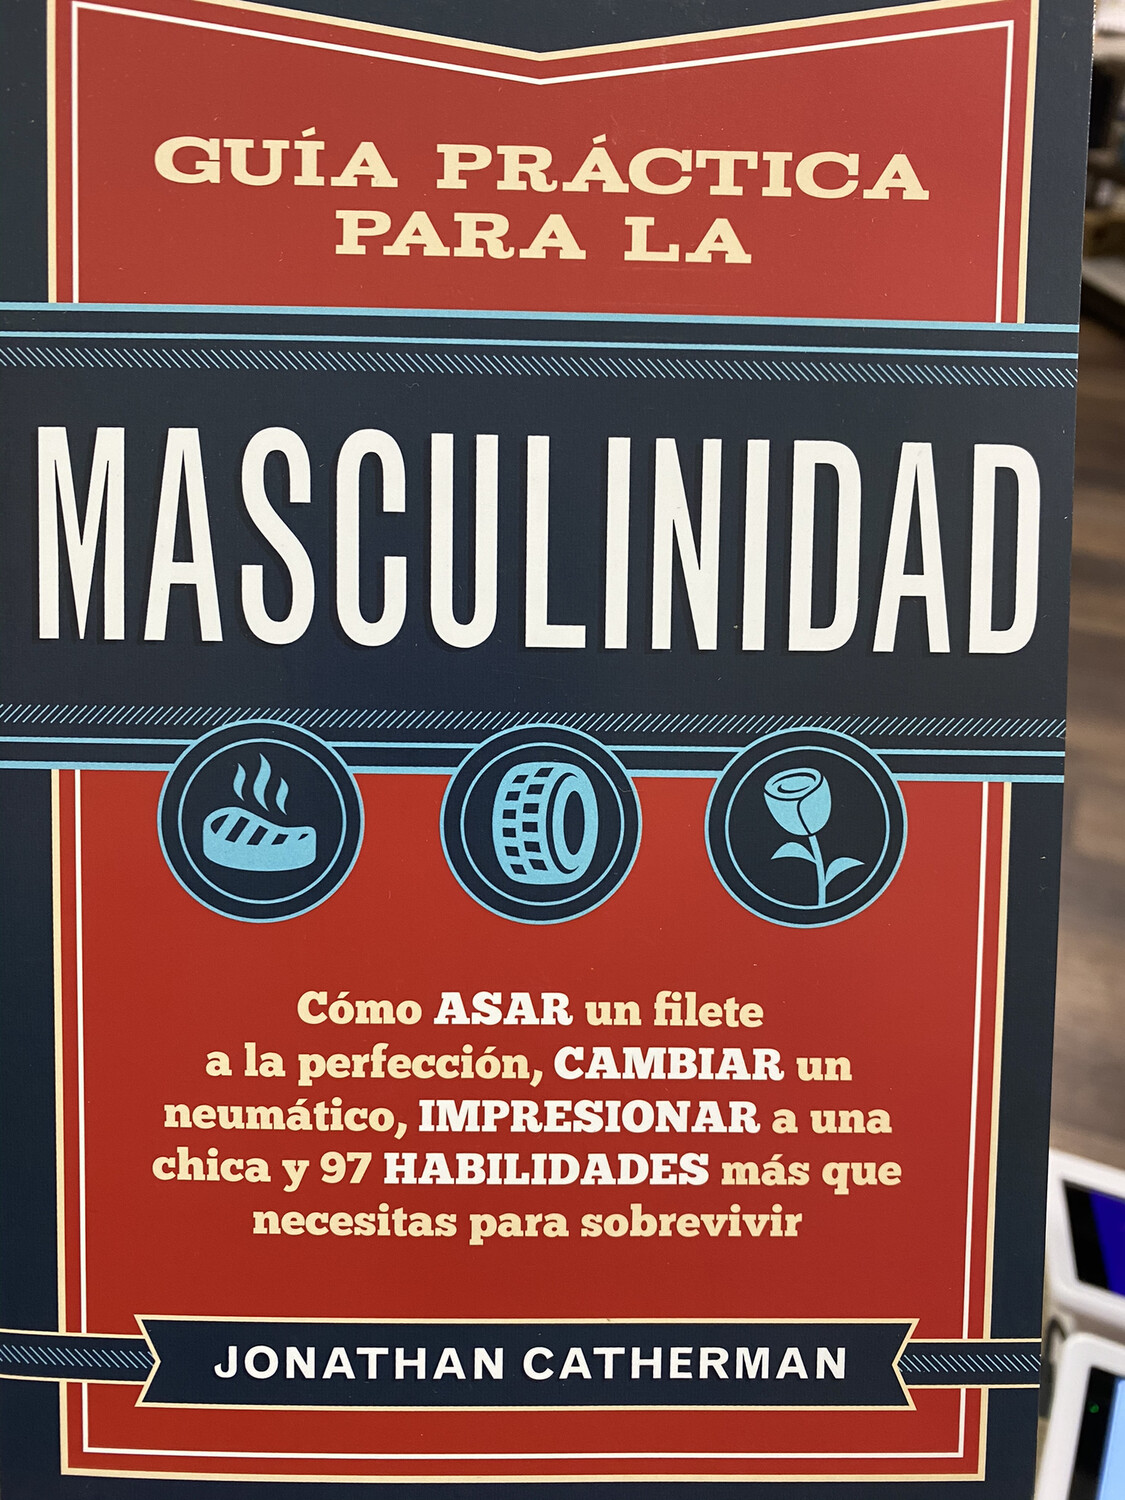 CATHERMAN, Masculinidad